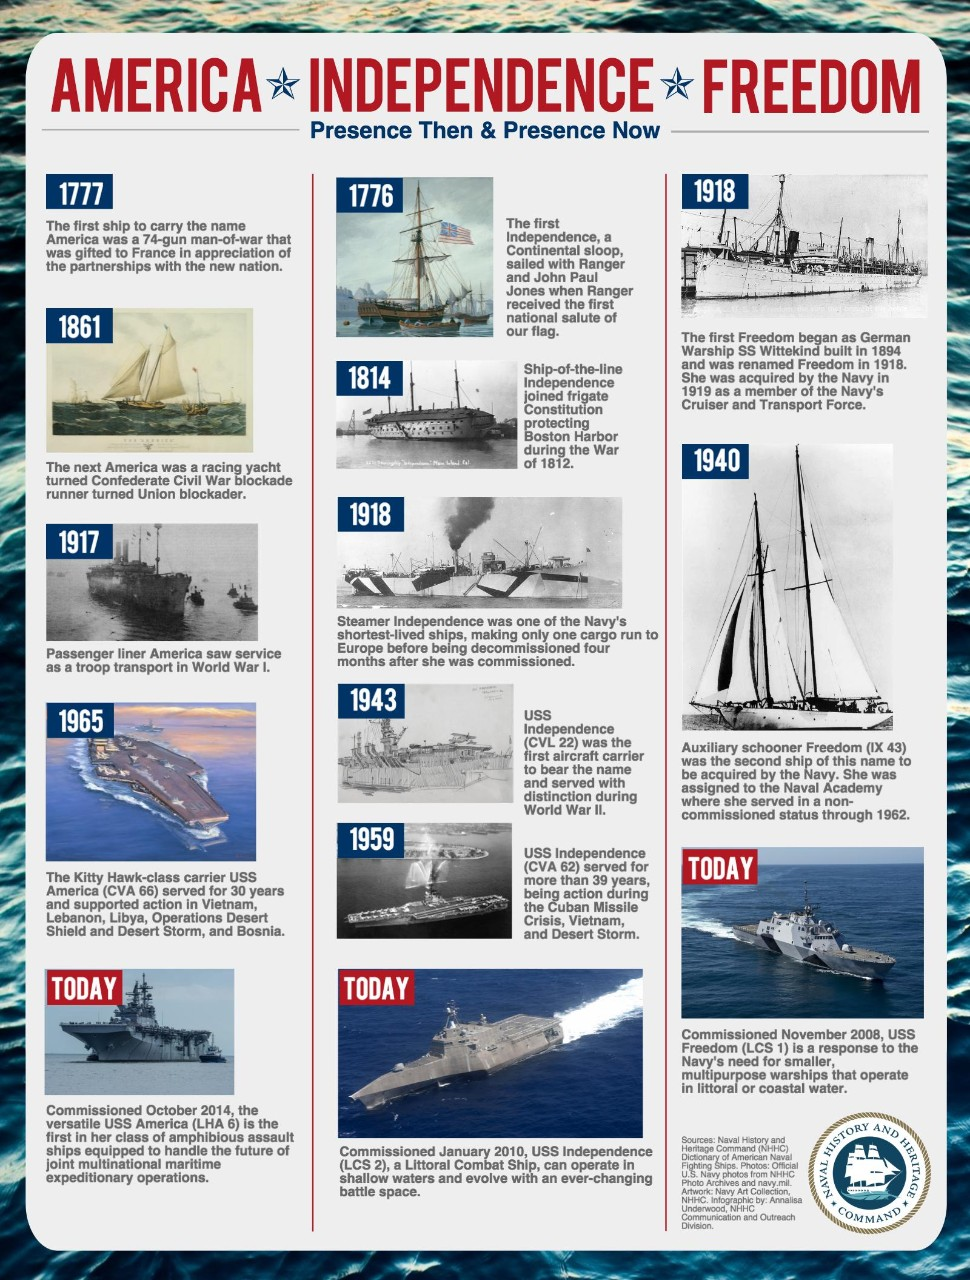 This infographic shares the history of U.S. Navy ships that have born the name America, Independence and Freedom